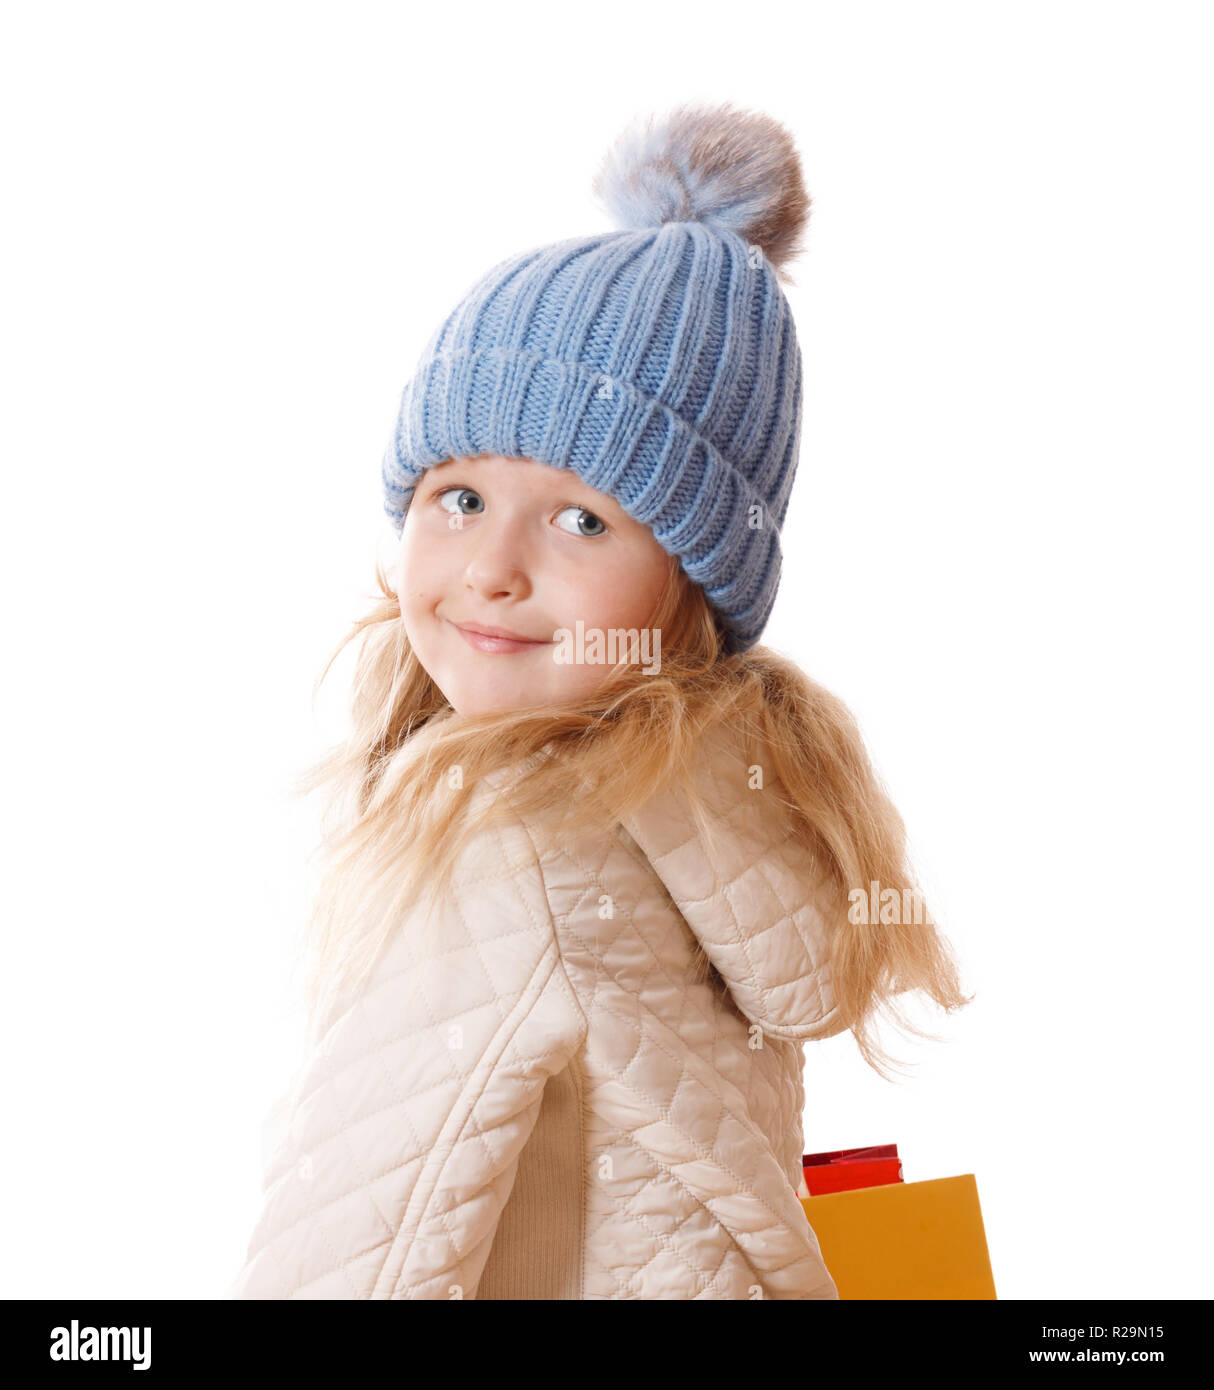 1b3562657 Baby Fur Hat White Stock Photos & Baby Fur Hat White Stock Images ...